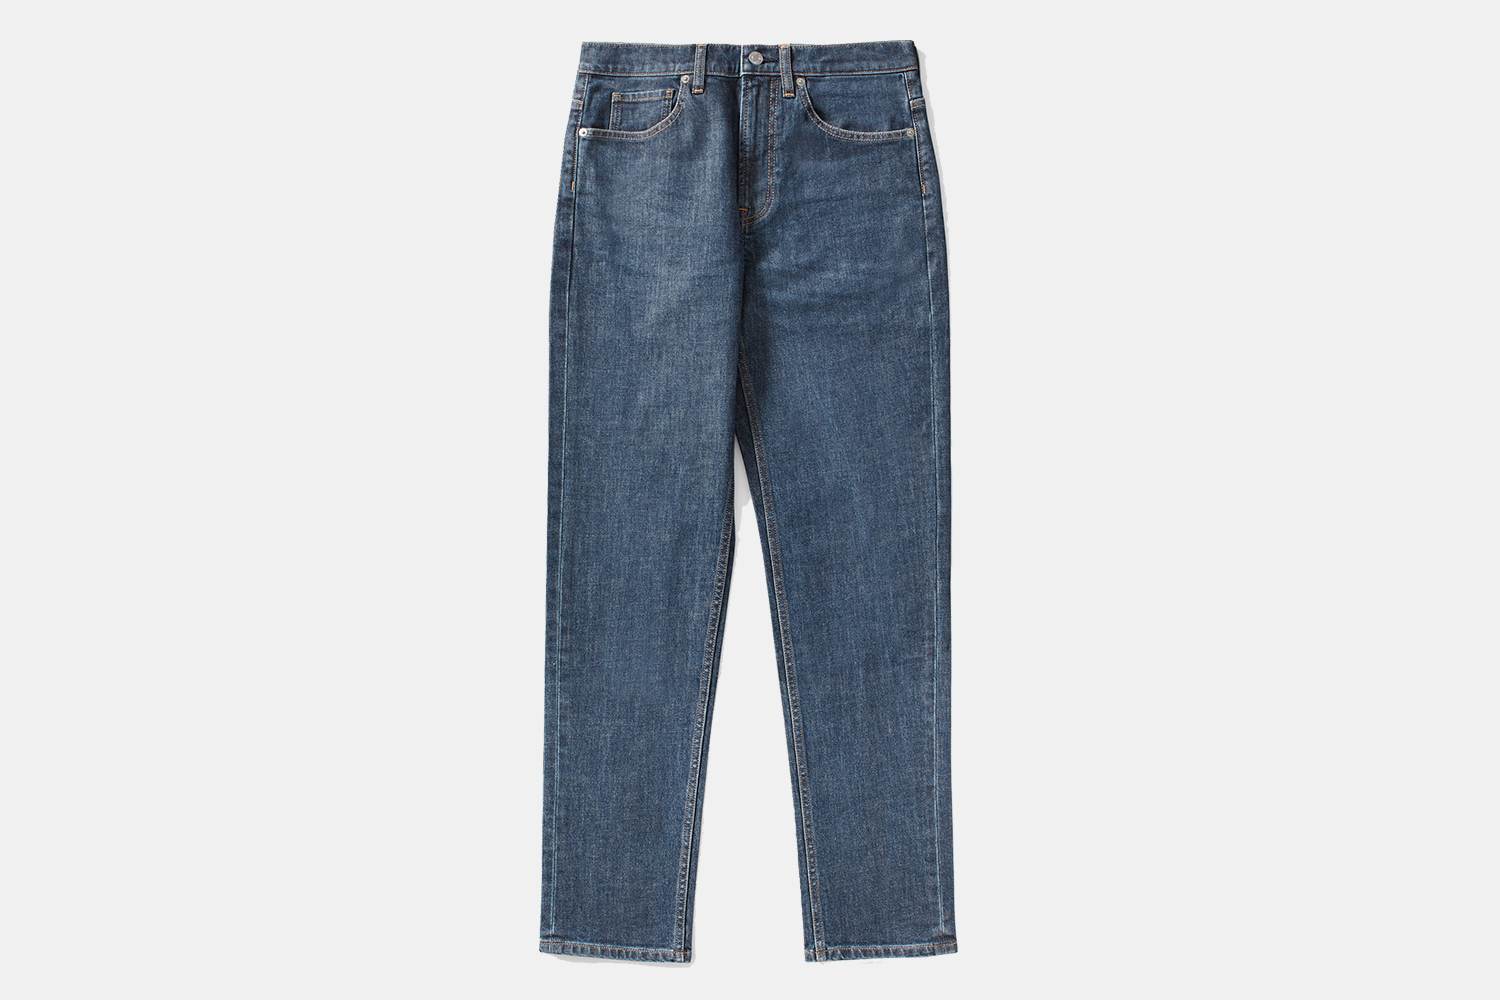 Everlane Men's Straight Fit Jean